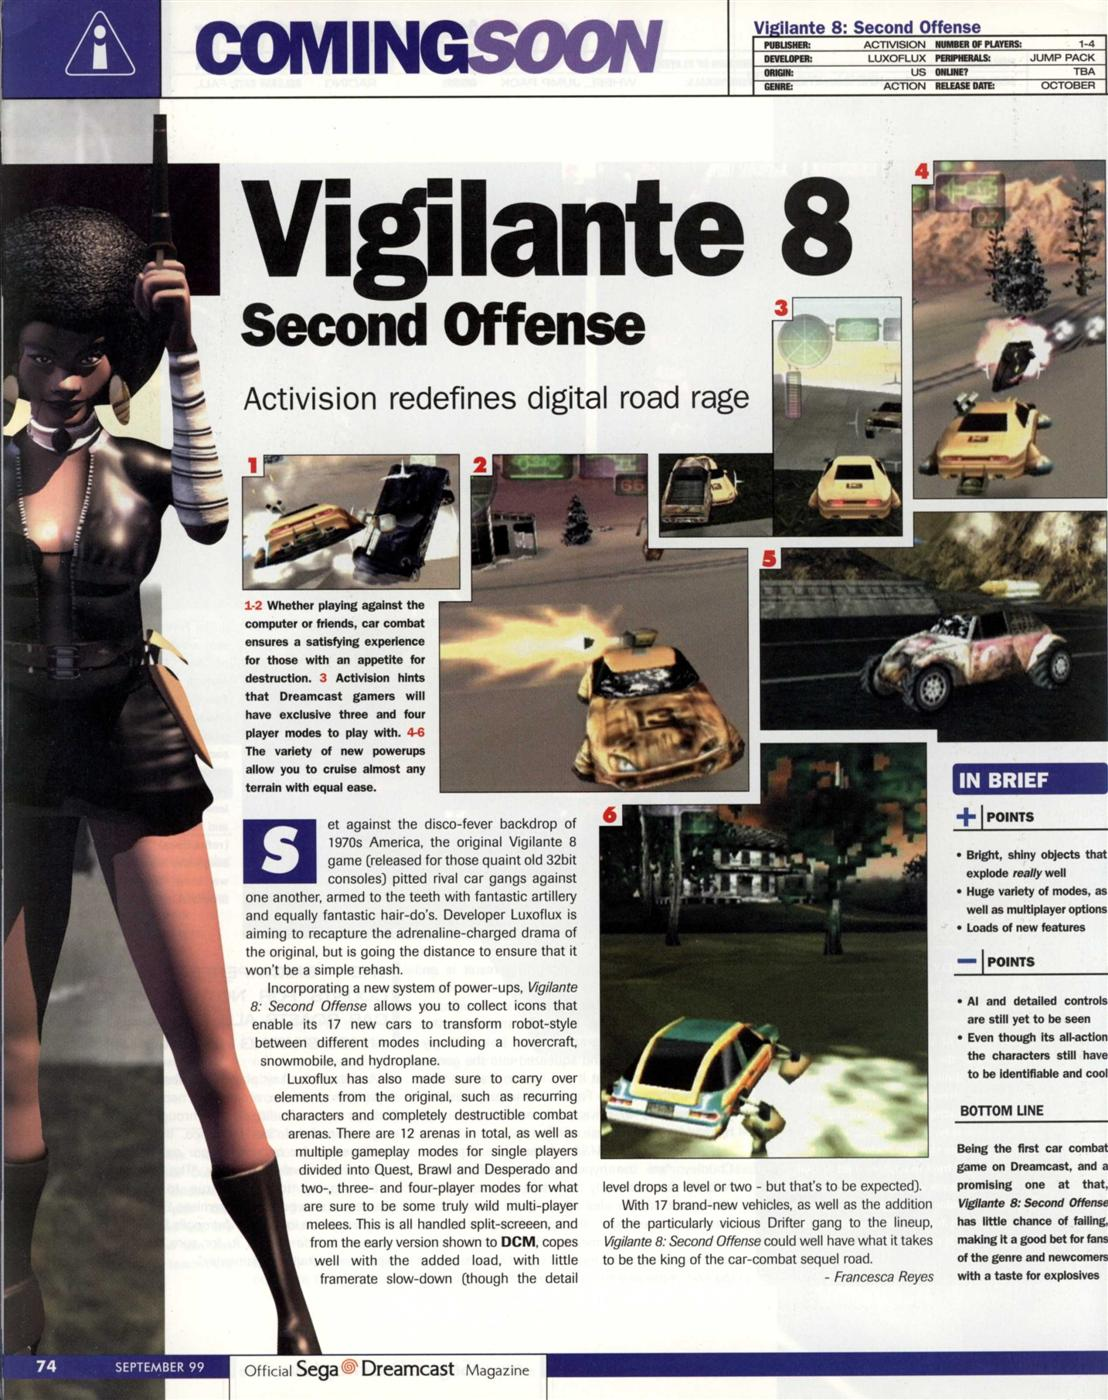 Vigilante 8: 2nd Offence